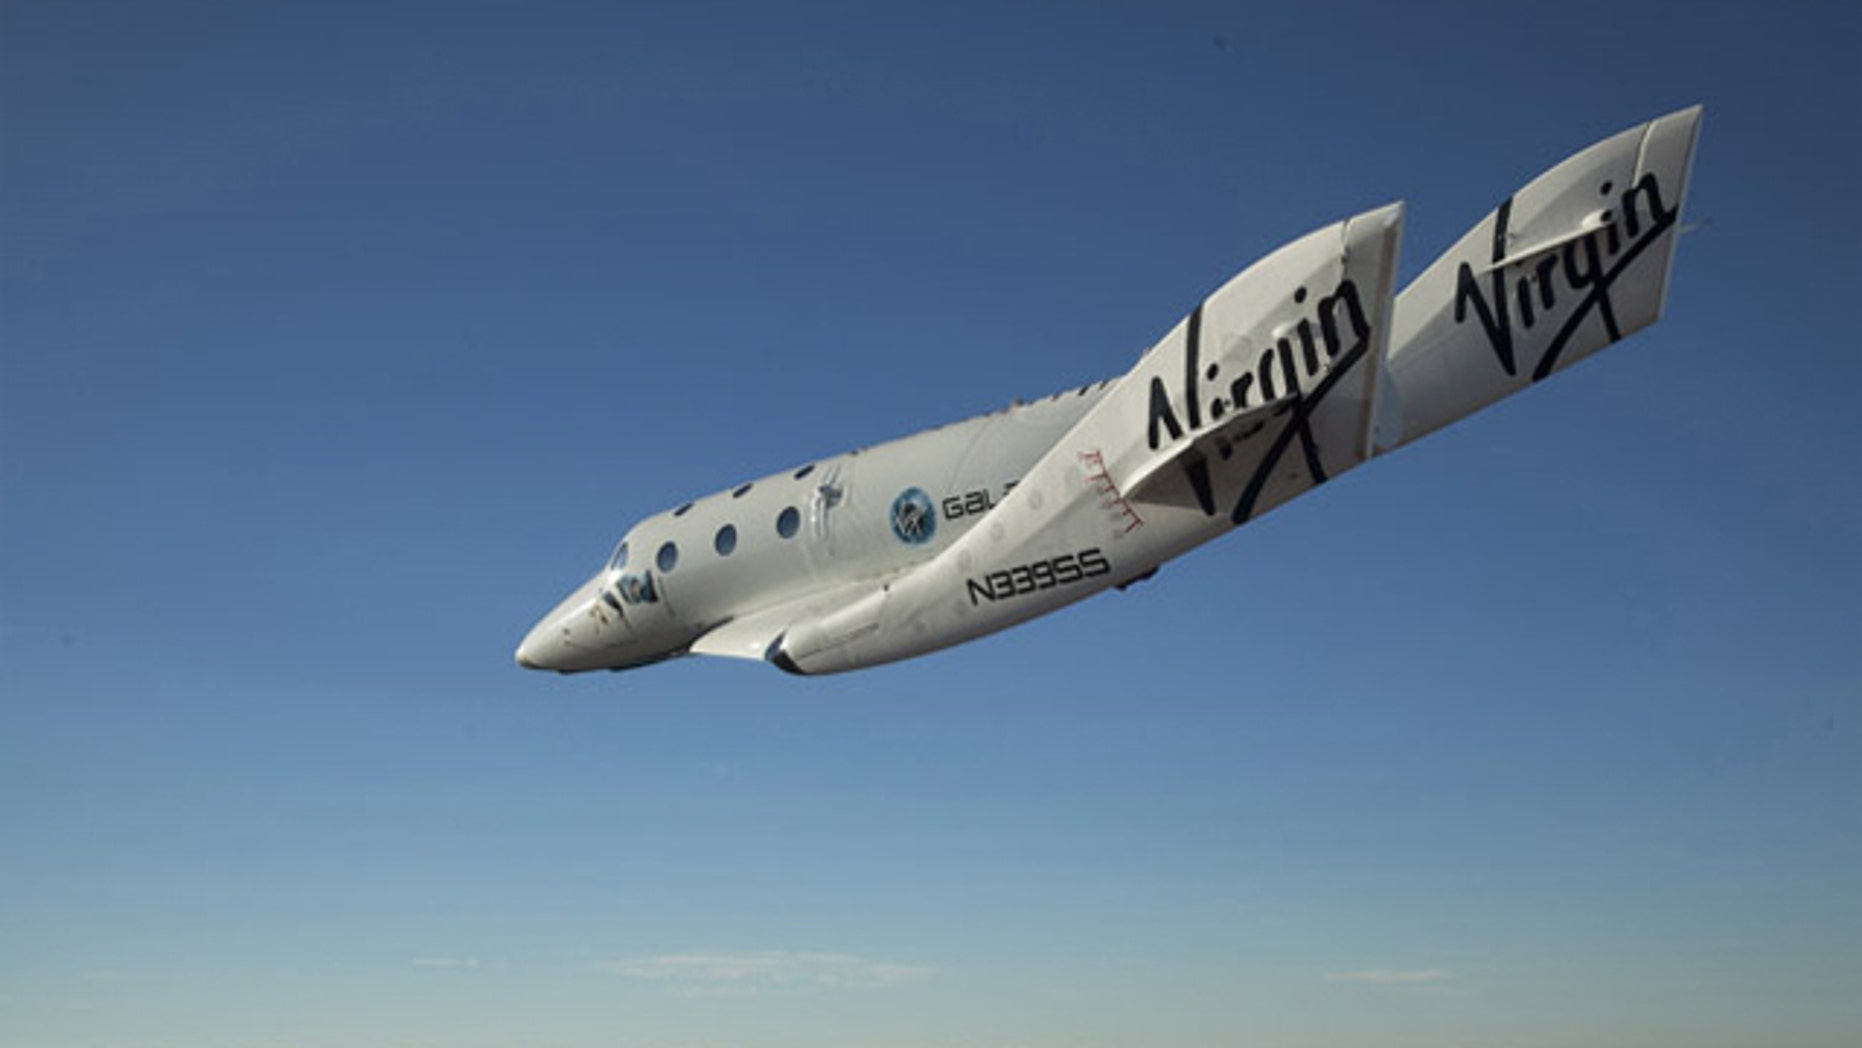 First solo glide flight of Virgin Galactic's SpaceShipTwo on Oct. 10, 2010.